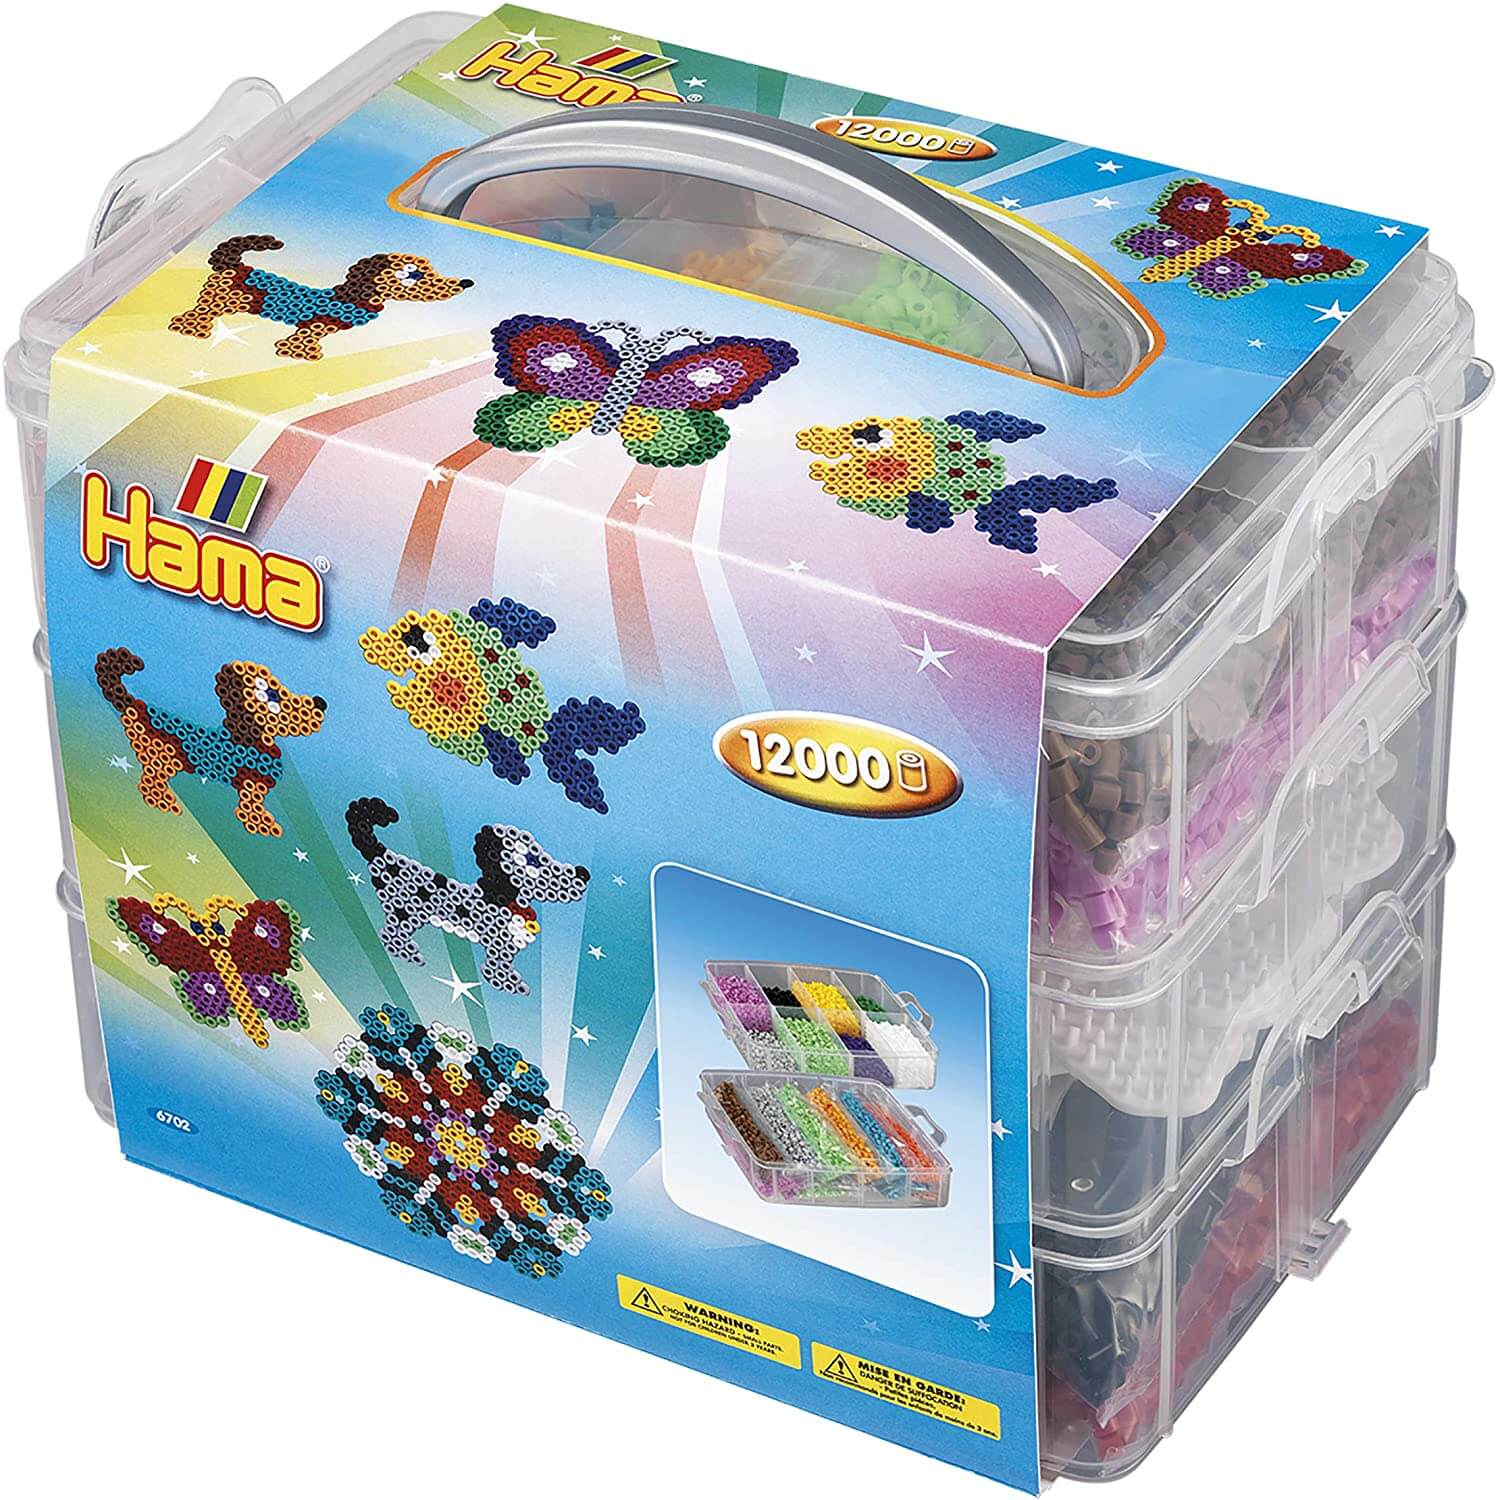 Hama Large Storage Box 12000 Beads